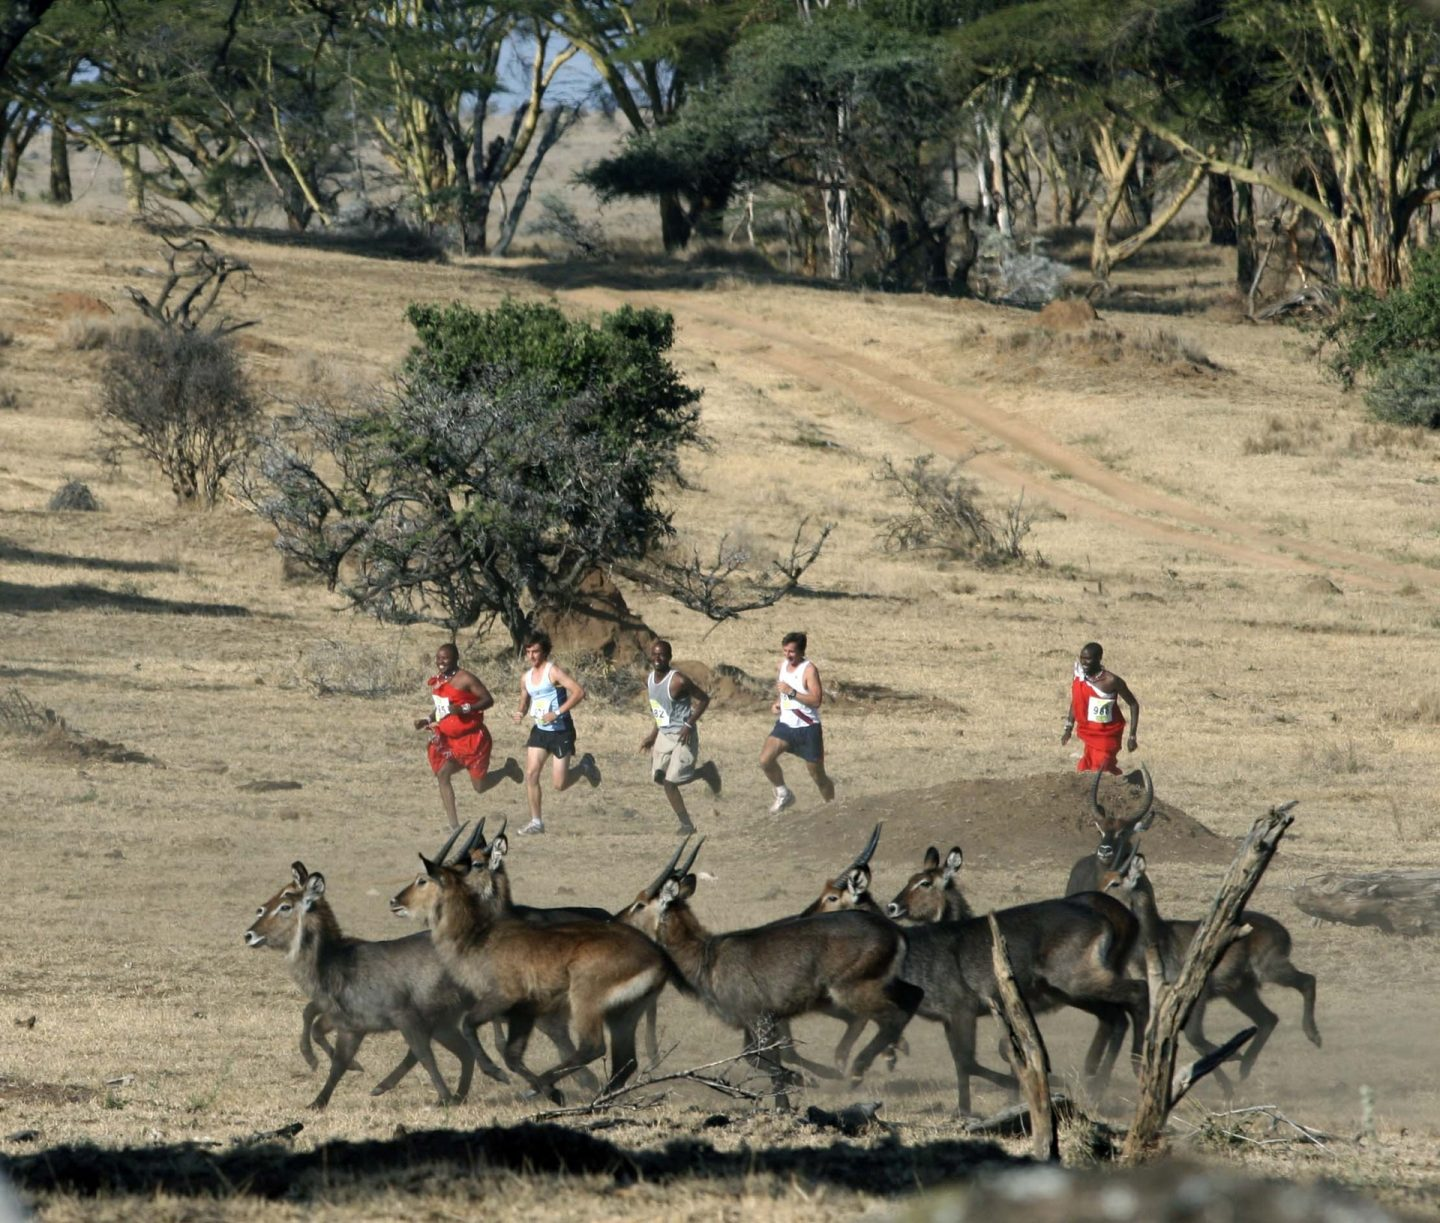 Safaricom Marathon Running with Waterbuck